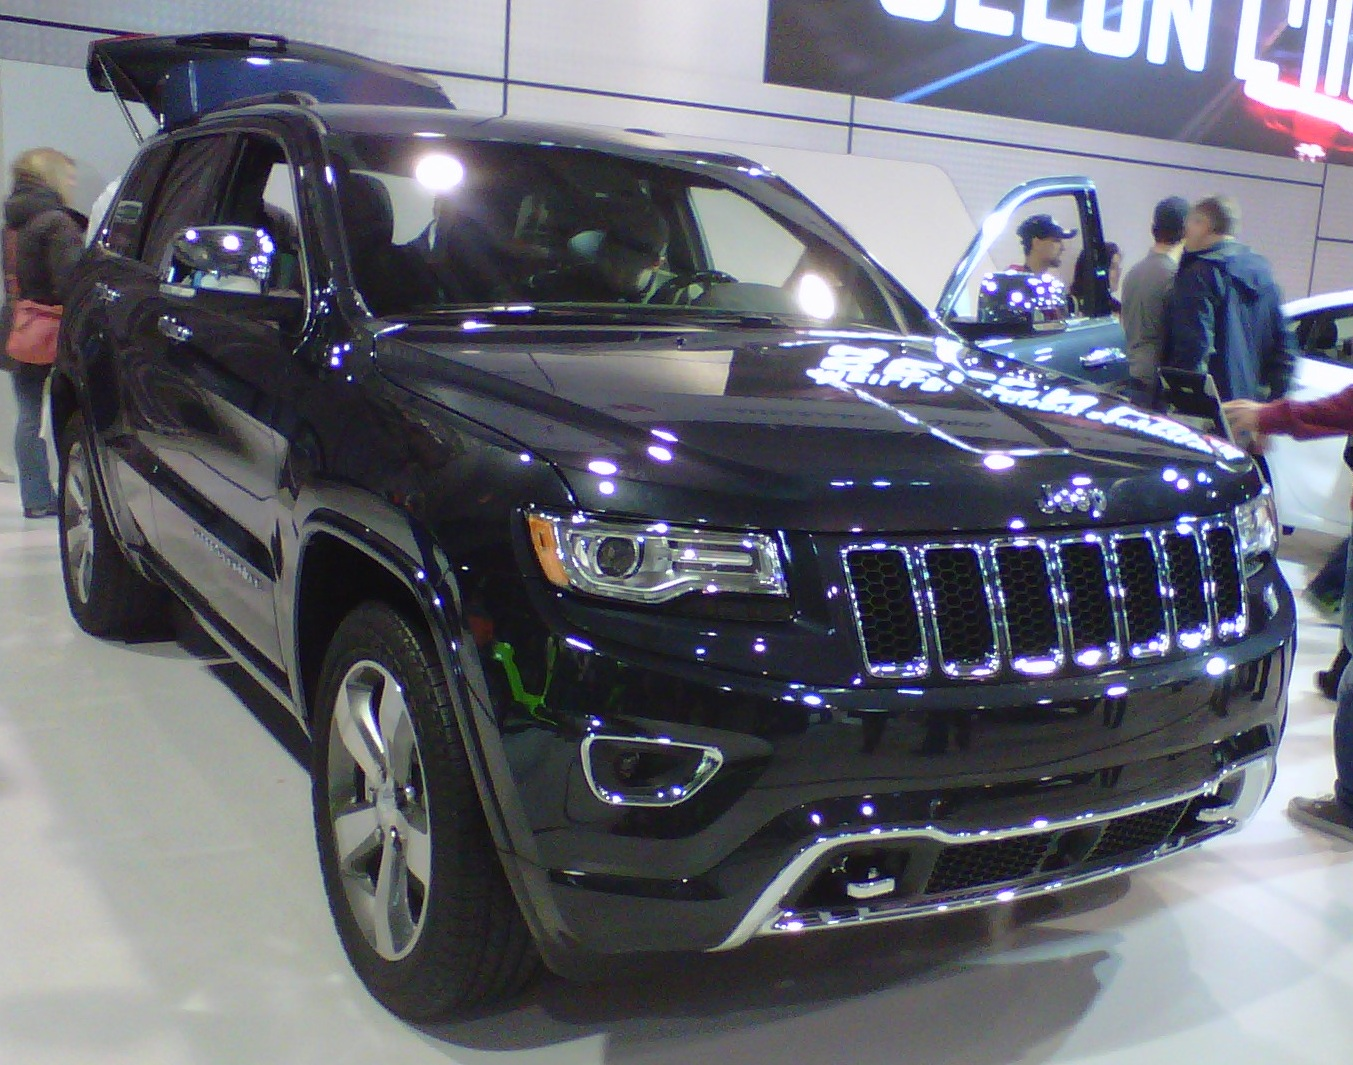 2014 Jeep Grand Cherokee front view